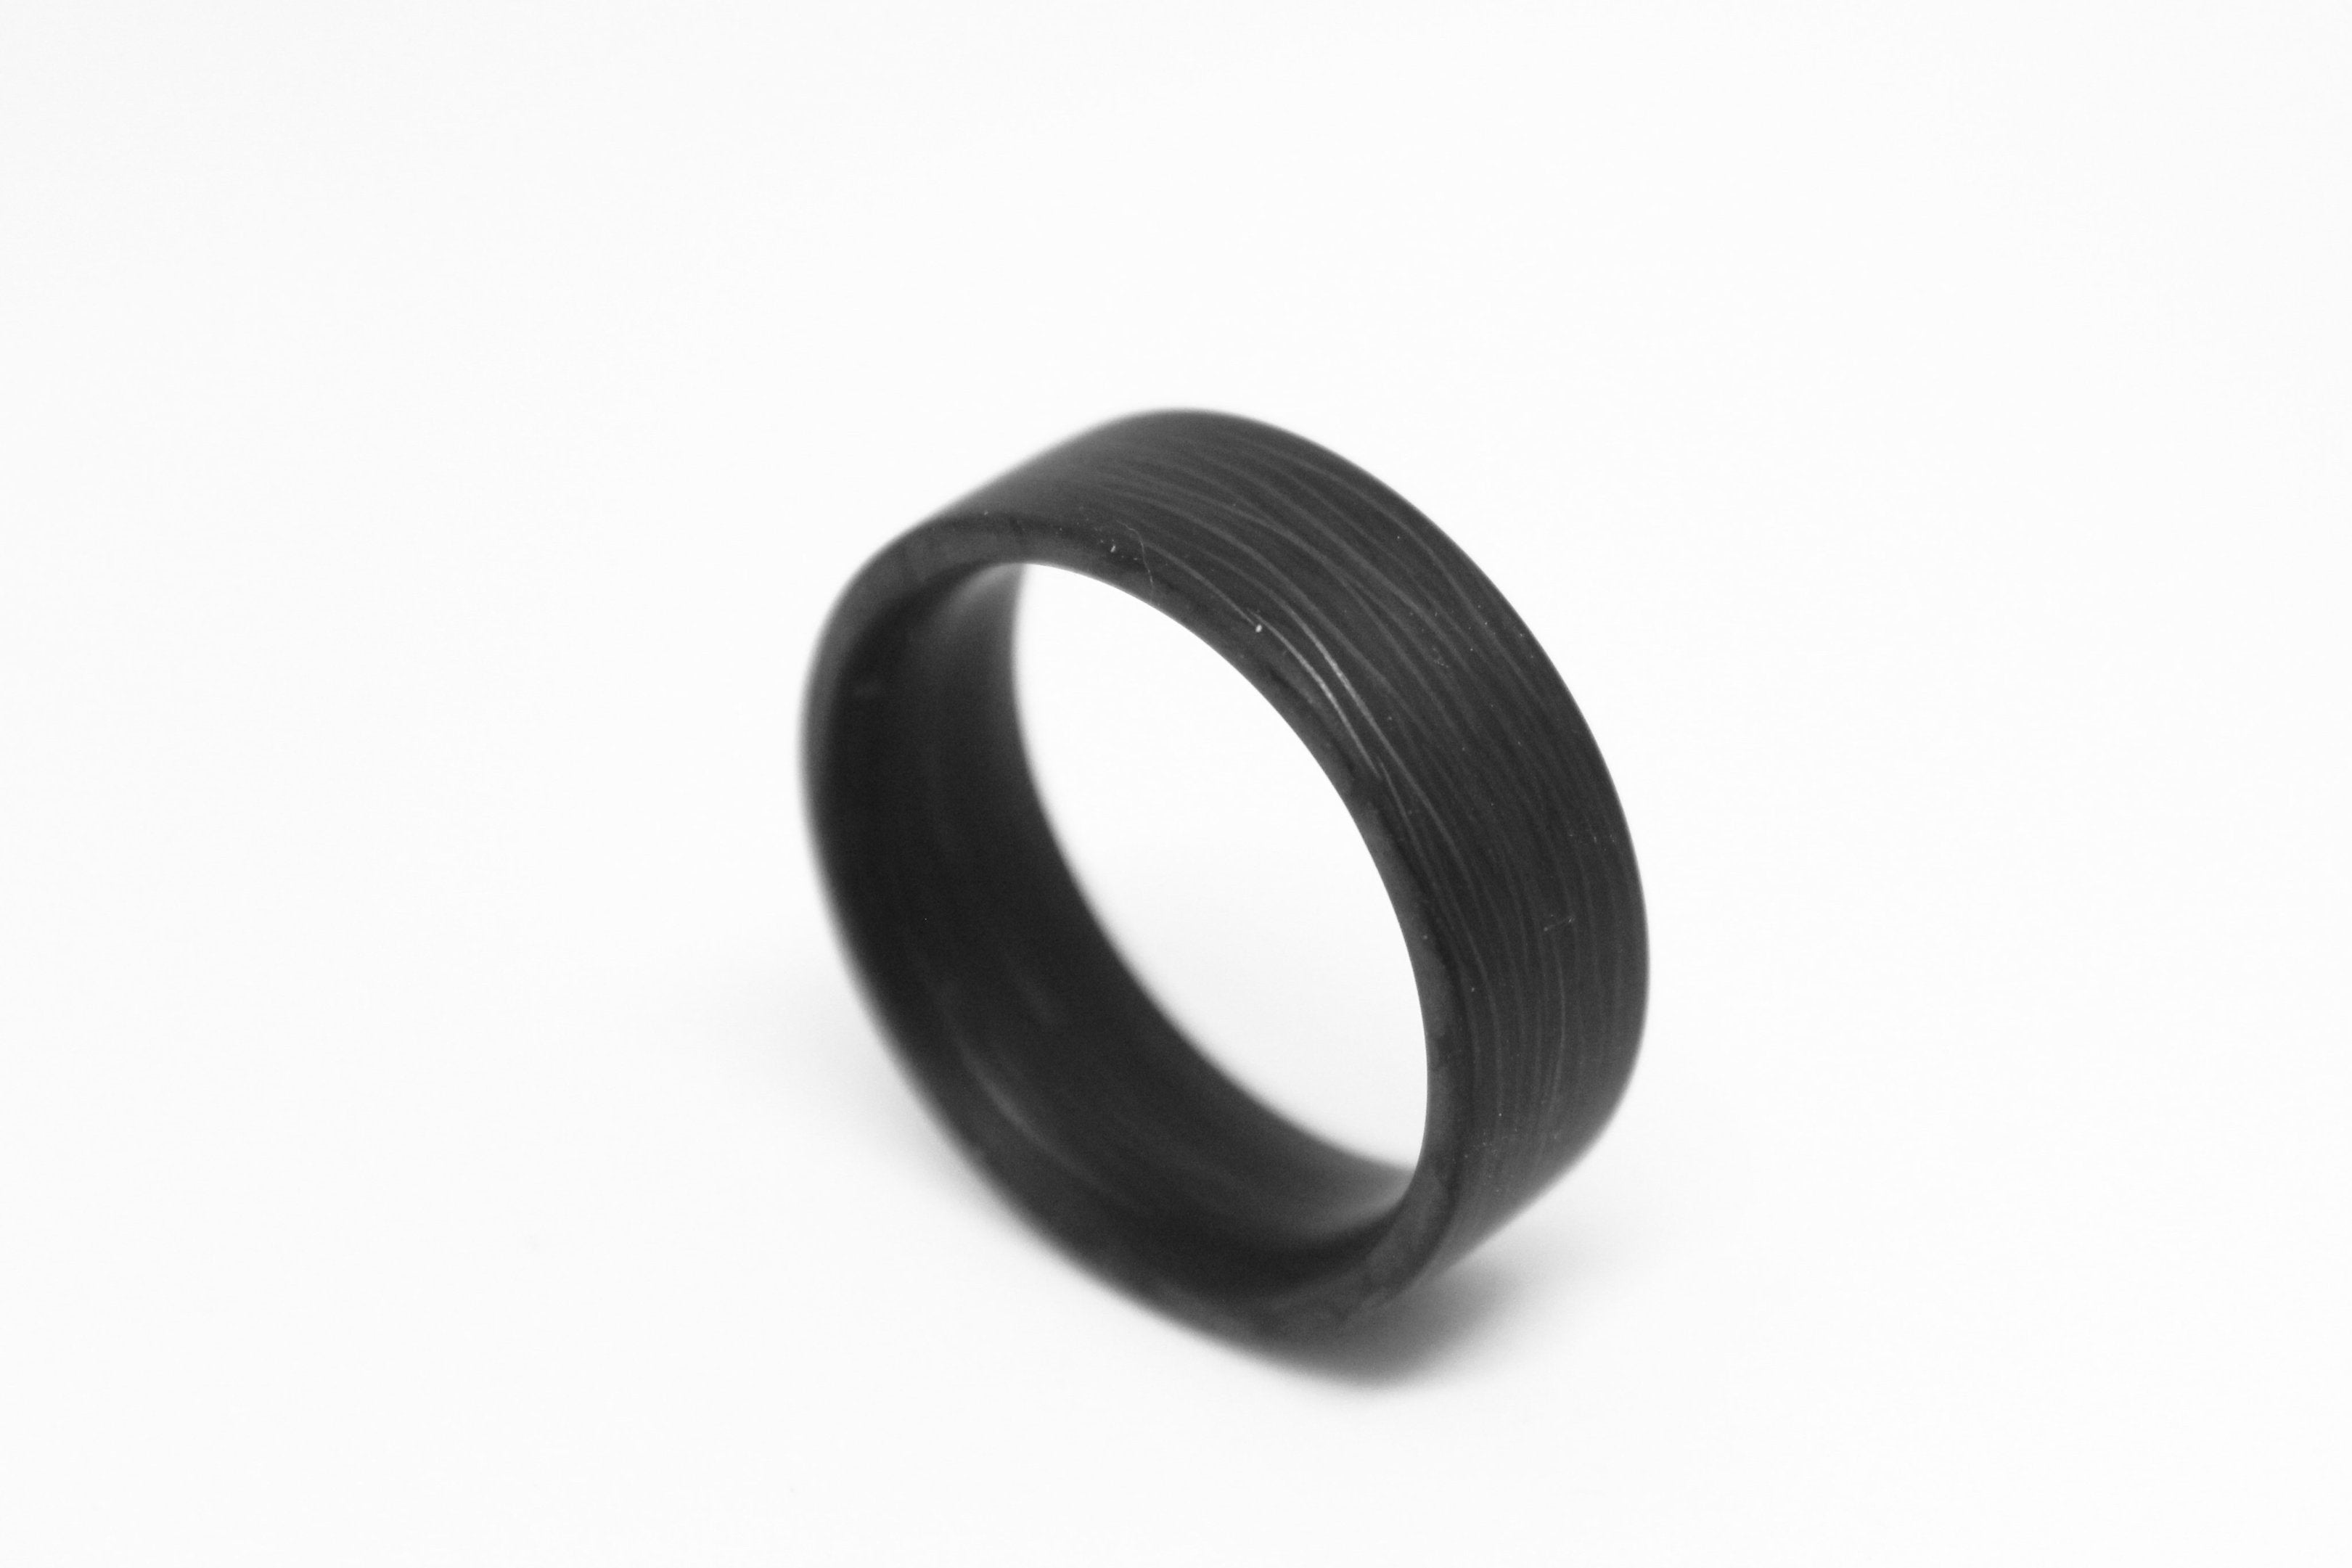 Size 7.5 Space X Carbon Fiber Ring